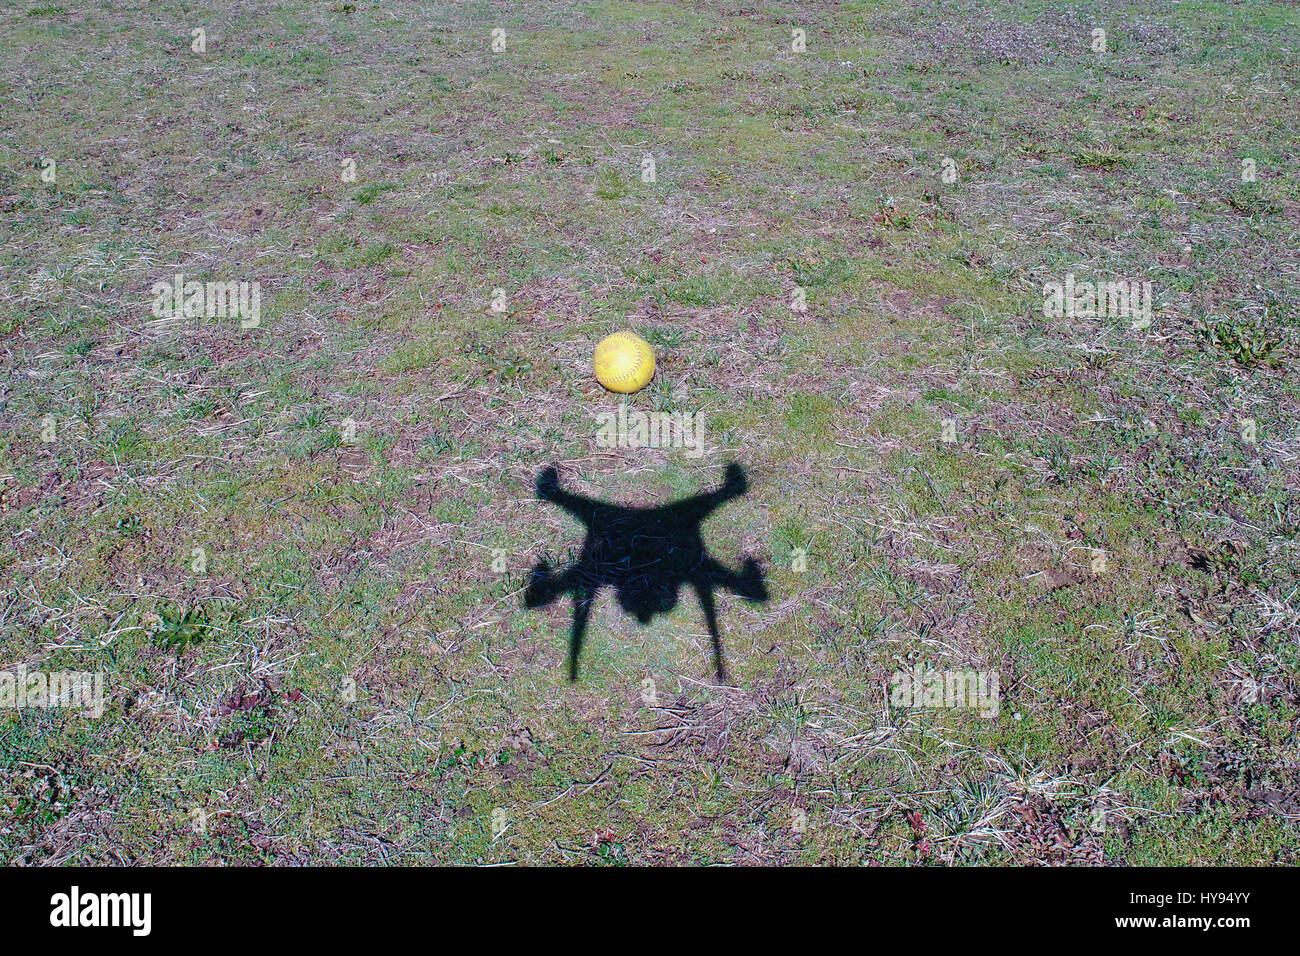 Drone taking picture of a ball , with its shadow - Stock Image